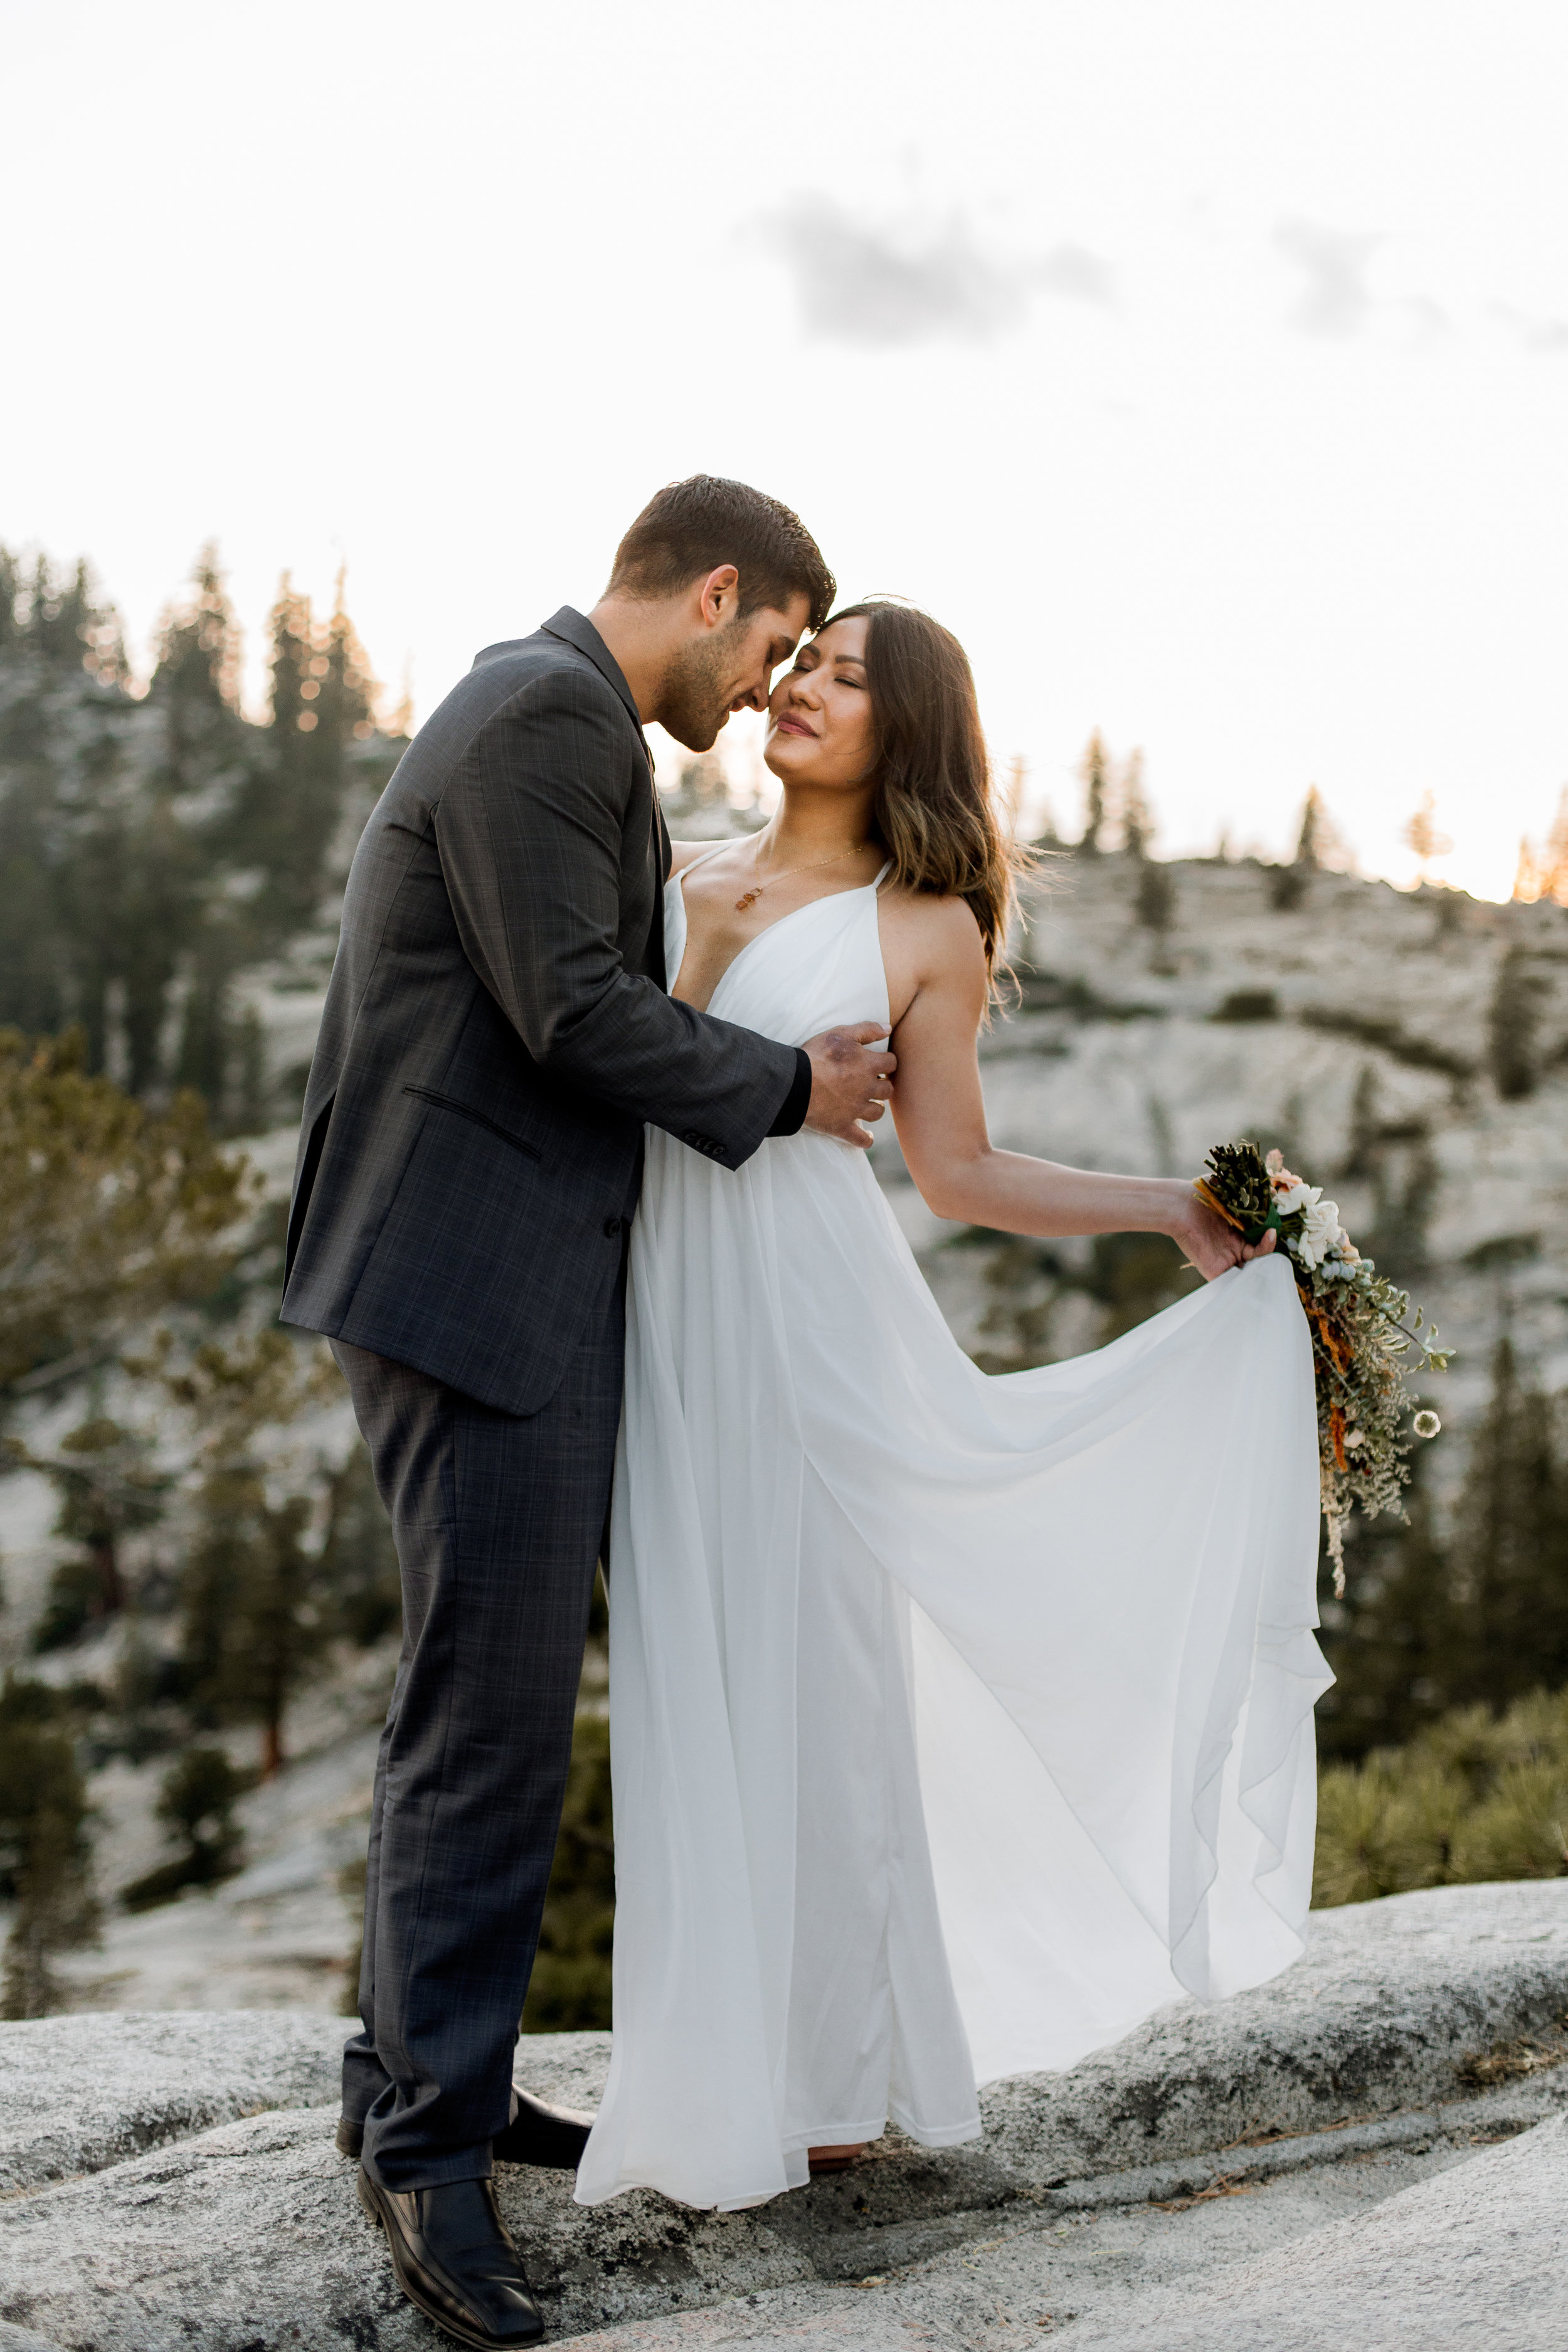 nicole-daacke-photography-yosemite-national-park-fall-elopement-adventurous-free-spirit-boho-bohemian-elopement-olmsted-point-yosemite-california-elope-adventure-elopement-photographer-27.jpg